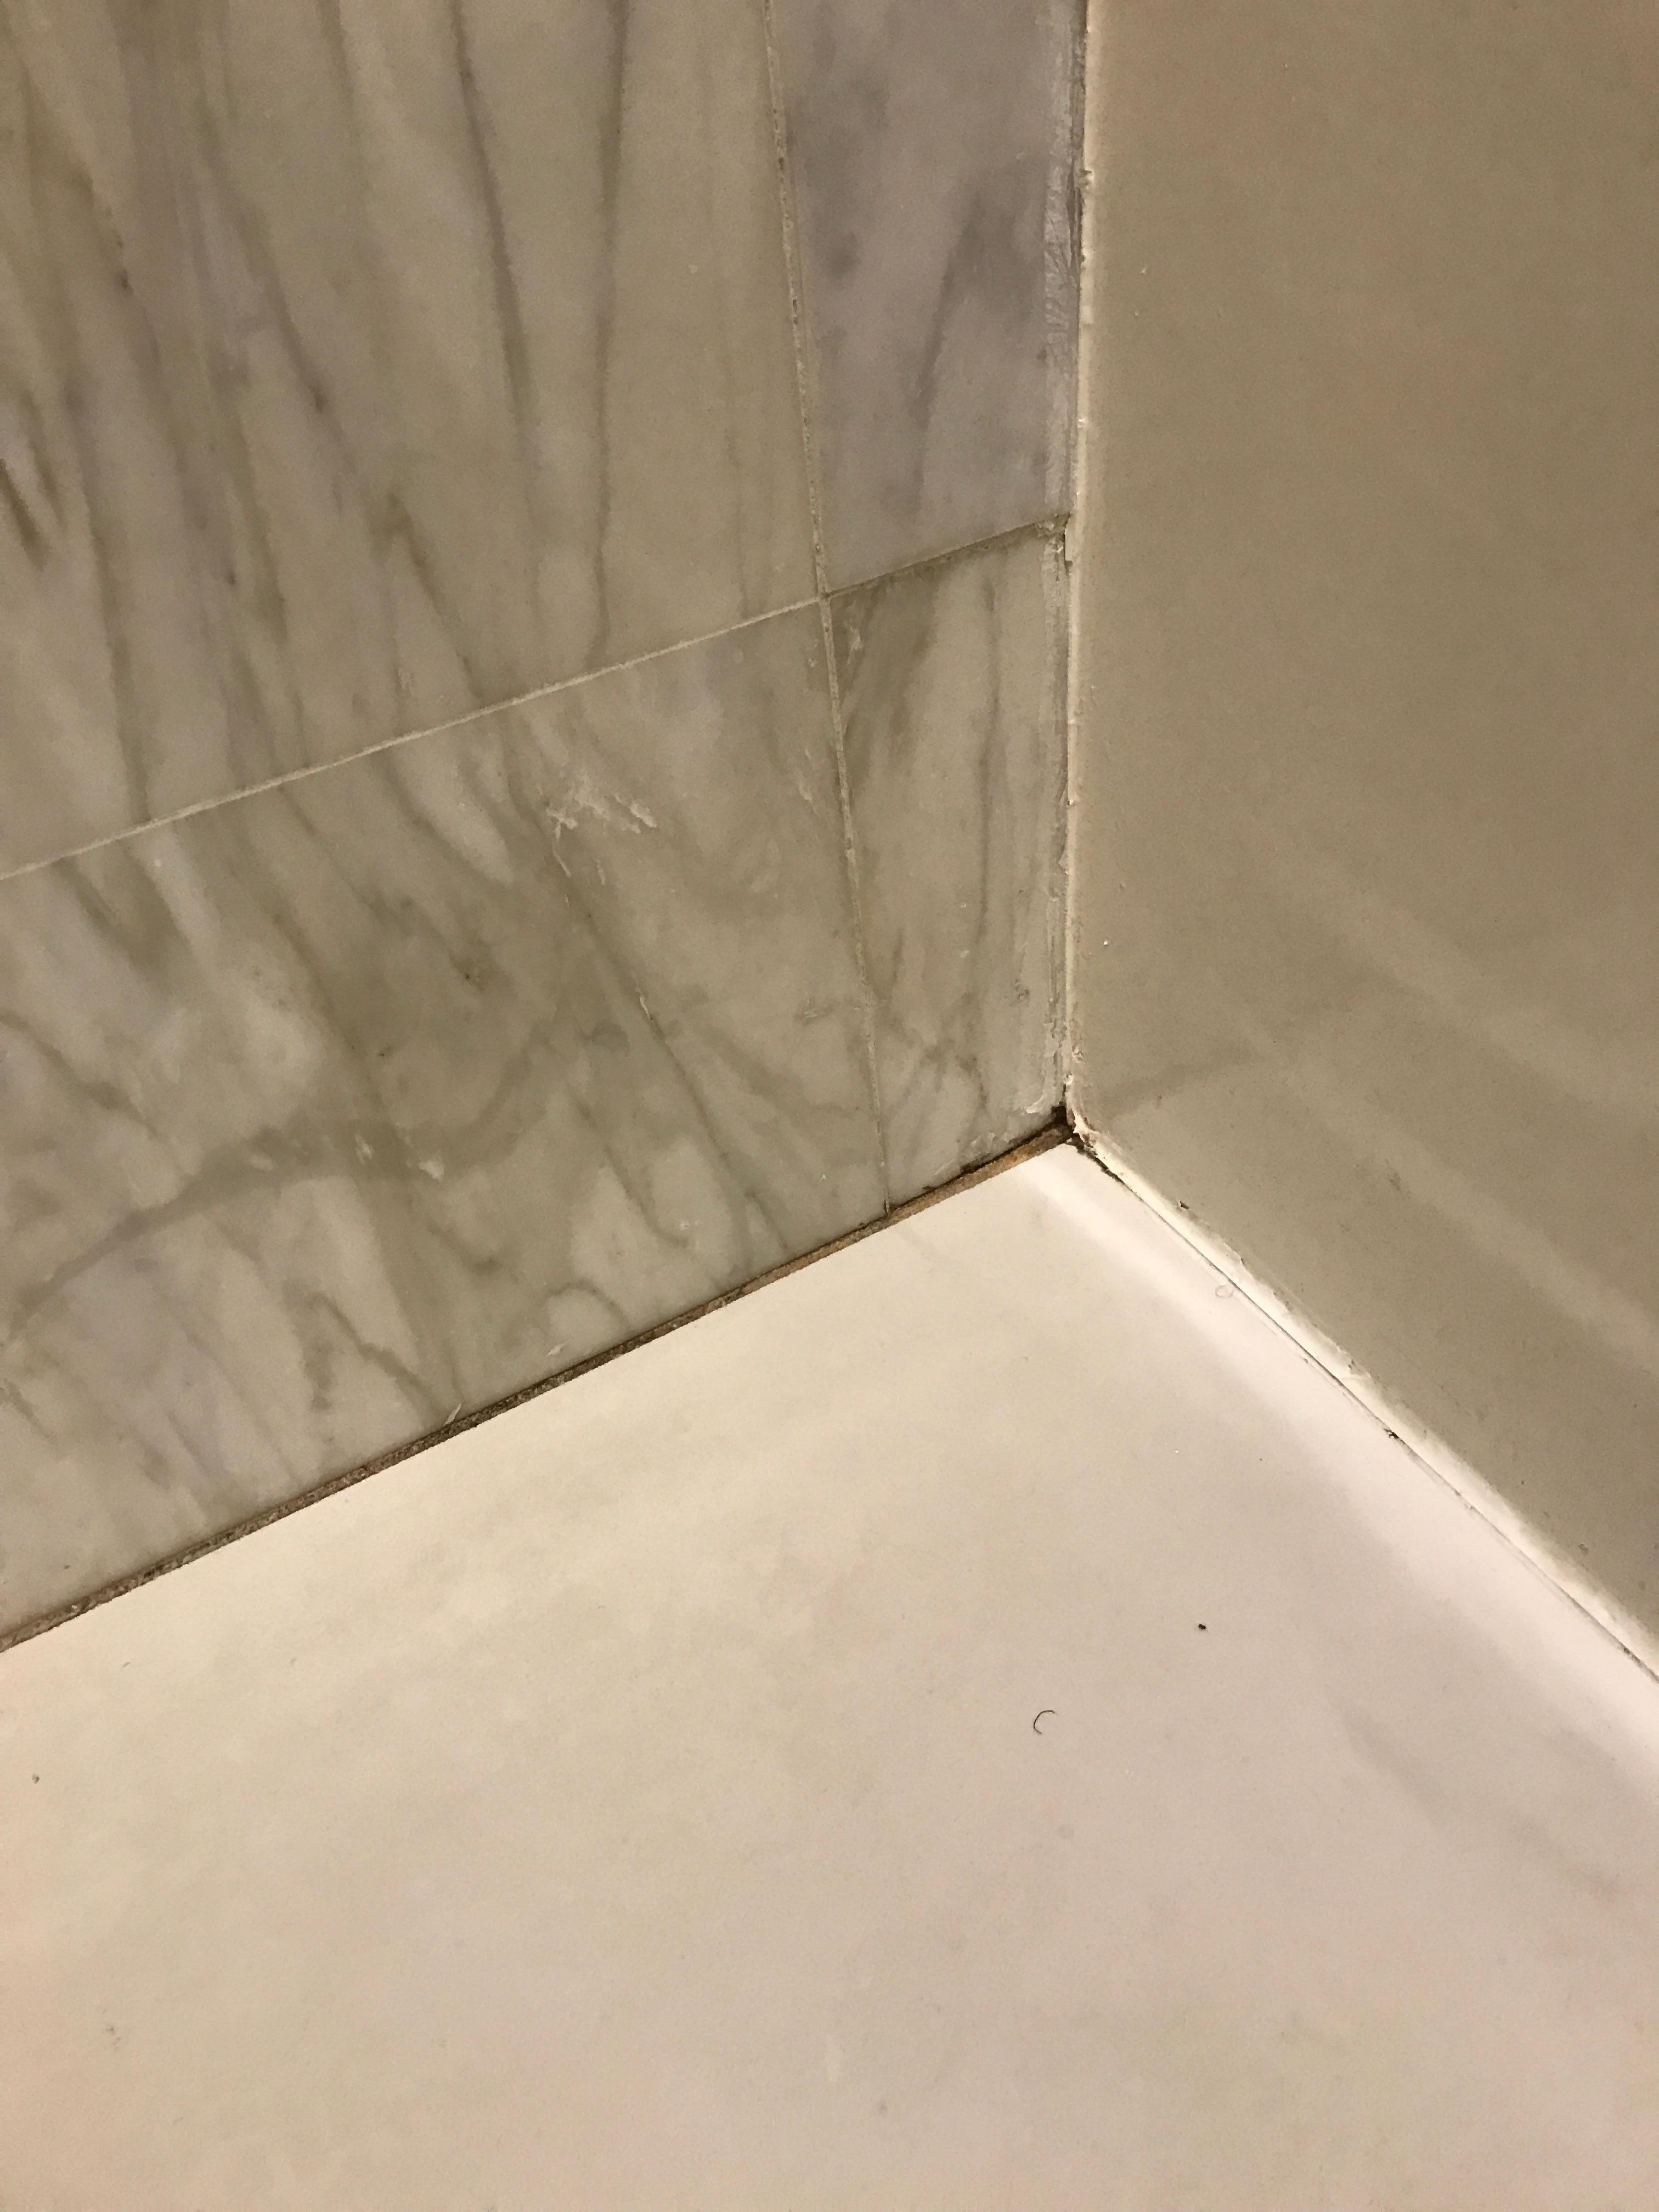 Mildew on bathroom floor